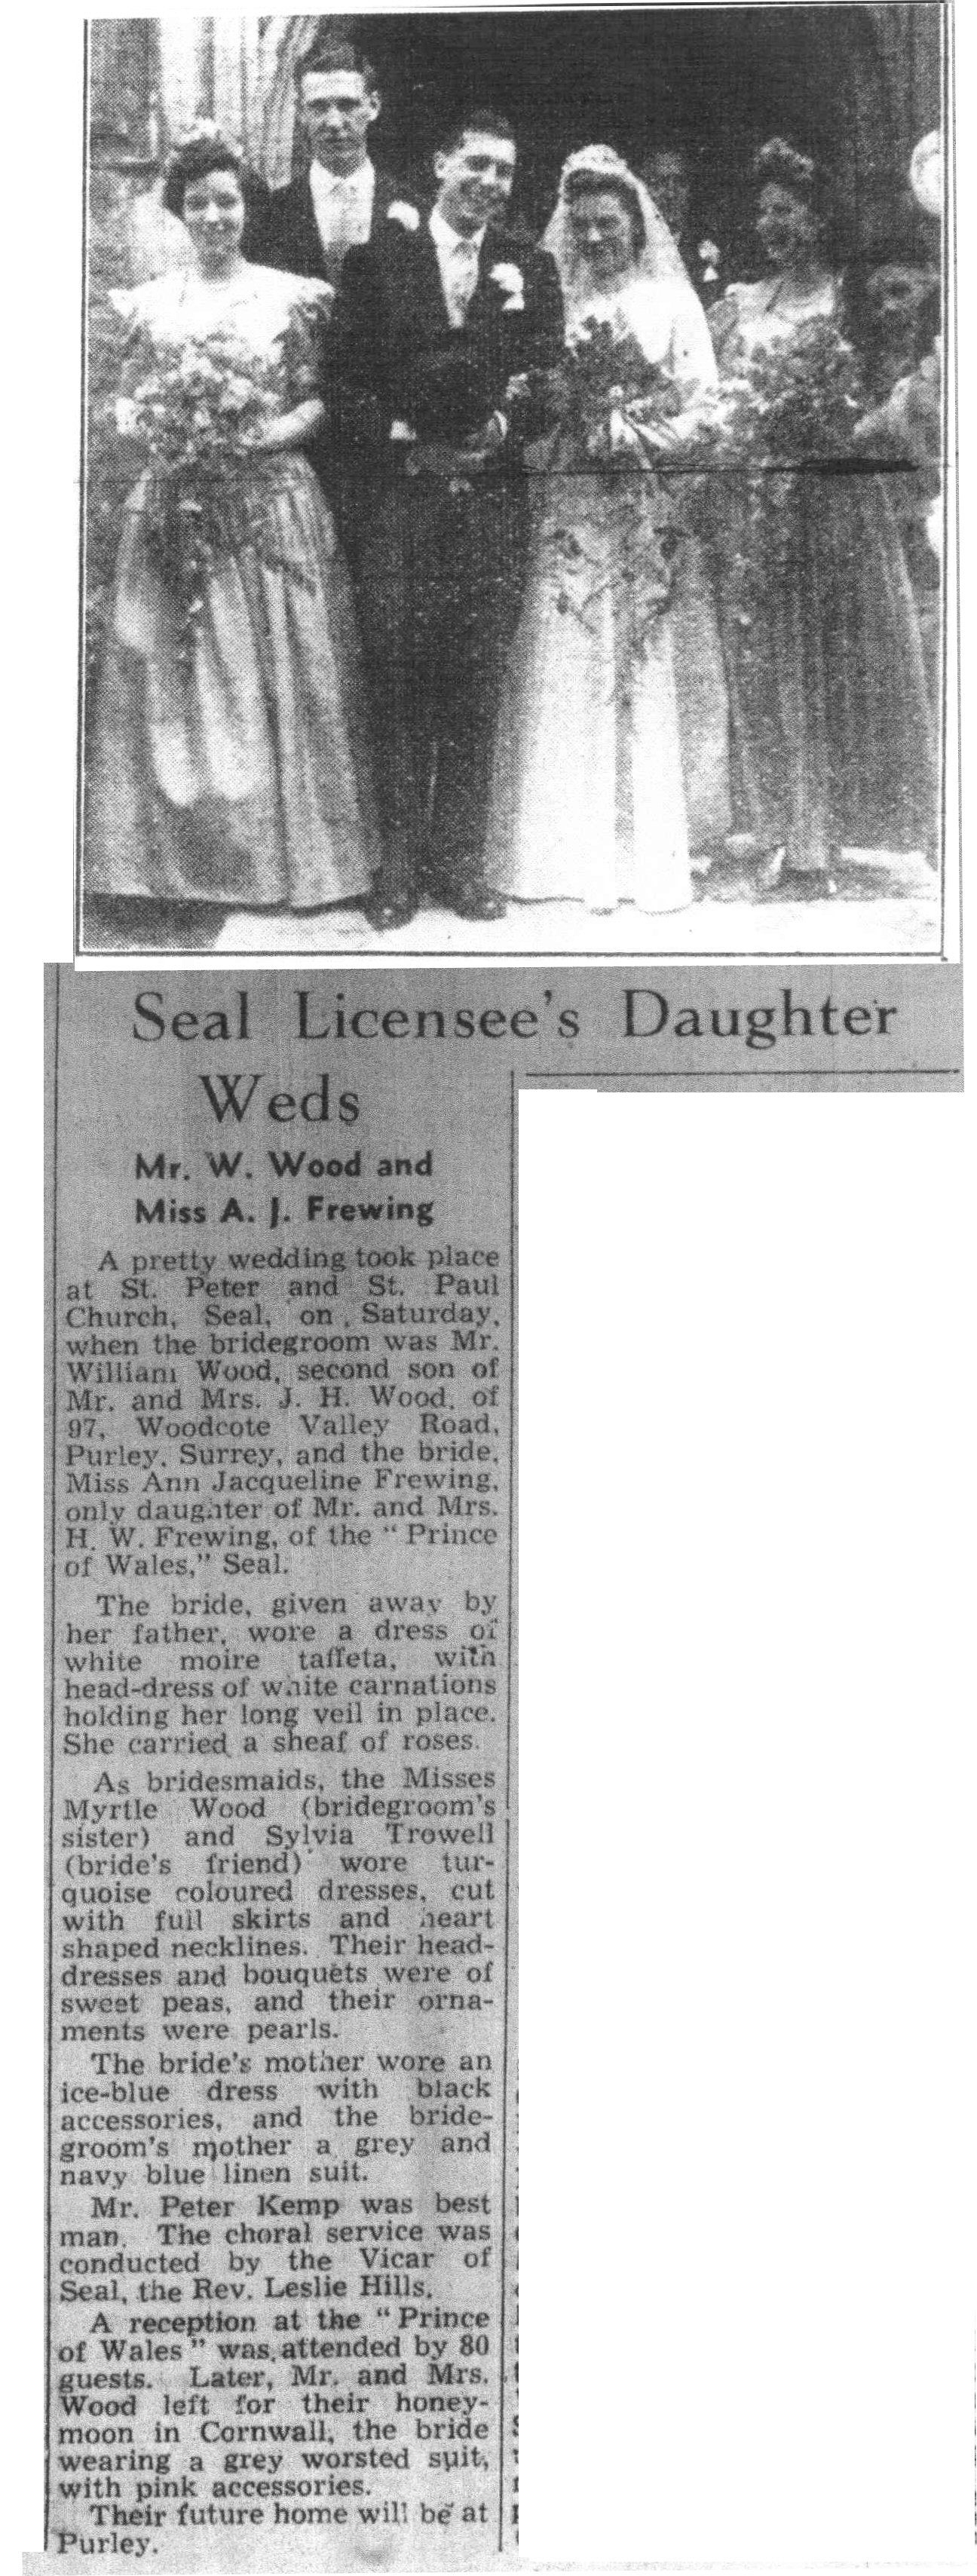 sevenoaks-news-thu-22-june-1950.jpg